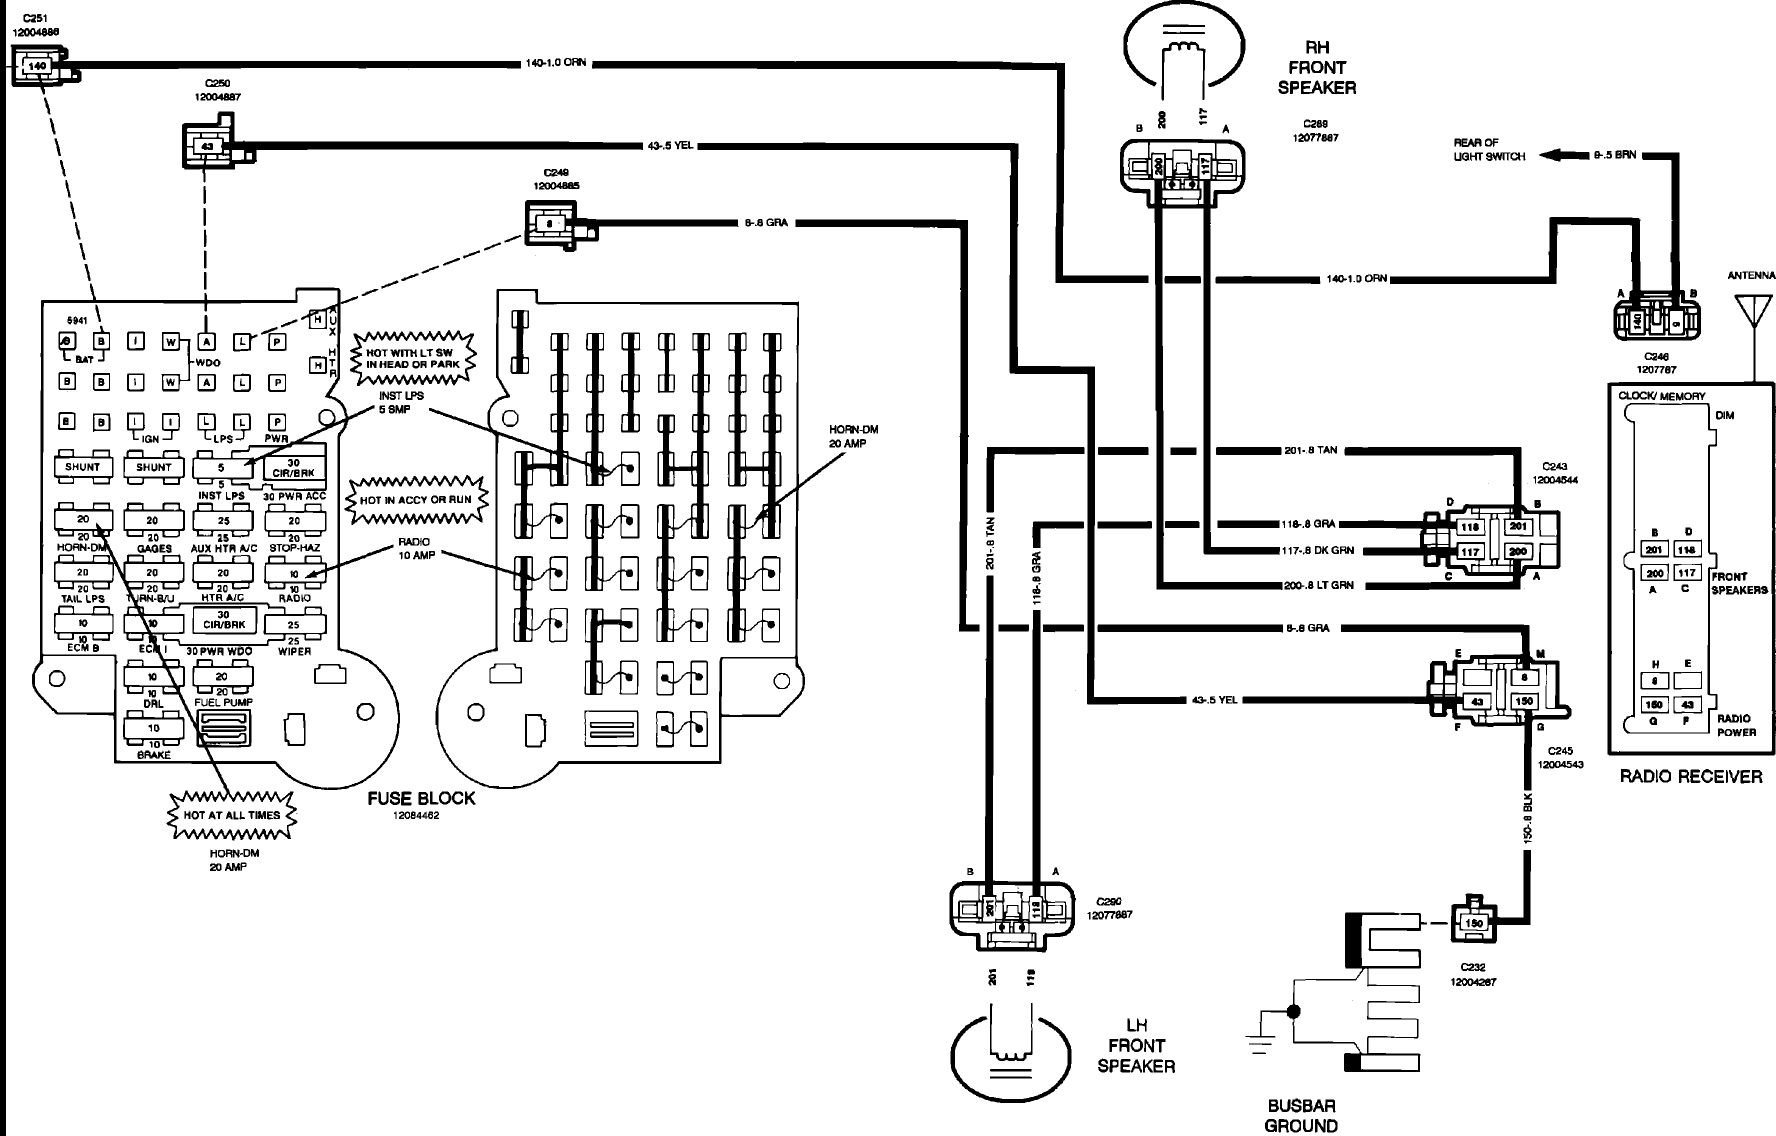 Chevy Cargo Van Fuse Box Diagram